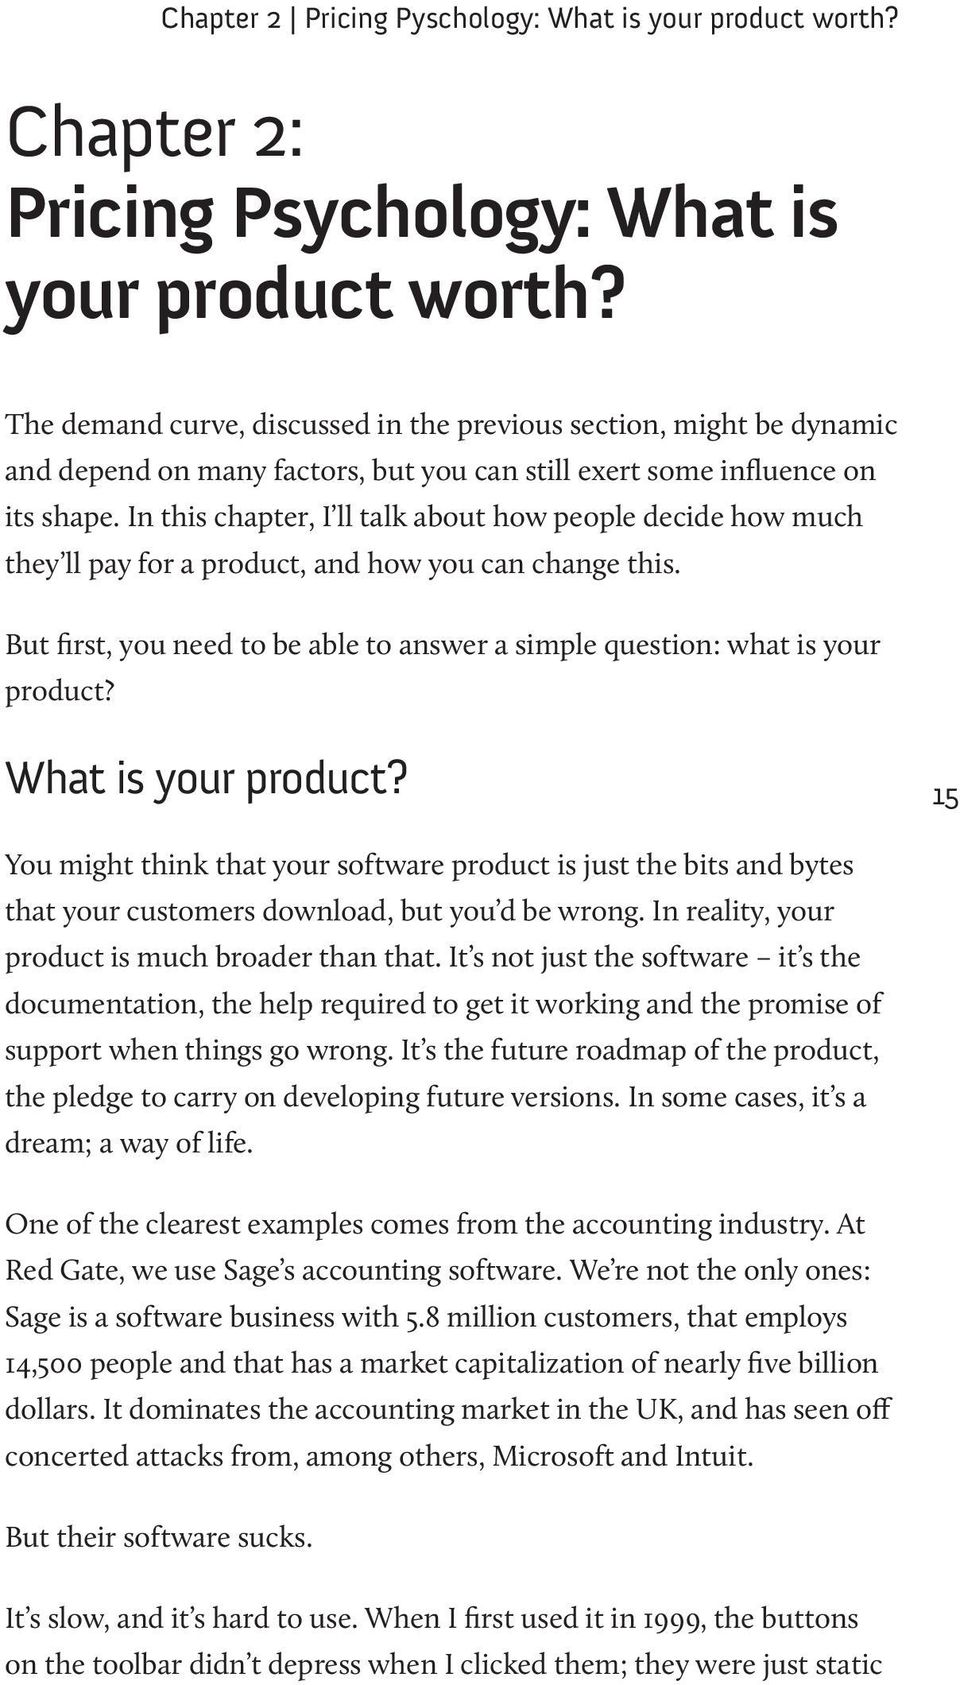 In this chapter, I ll talk about how people decide how much they ll pay for a product, and how you can change this. But first, you need to be able to answer a simple question: what is your product?